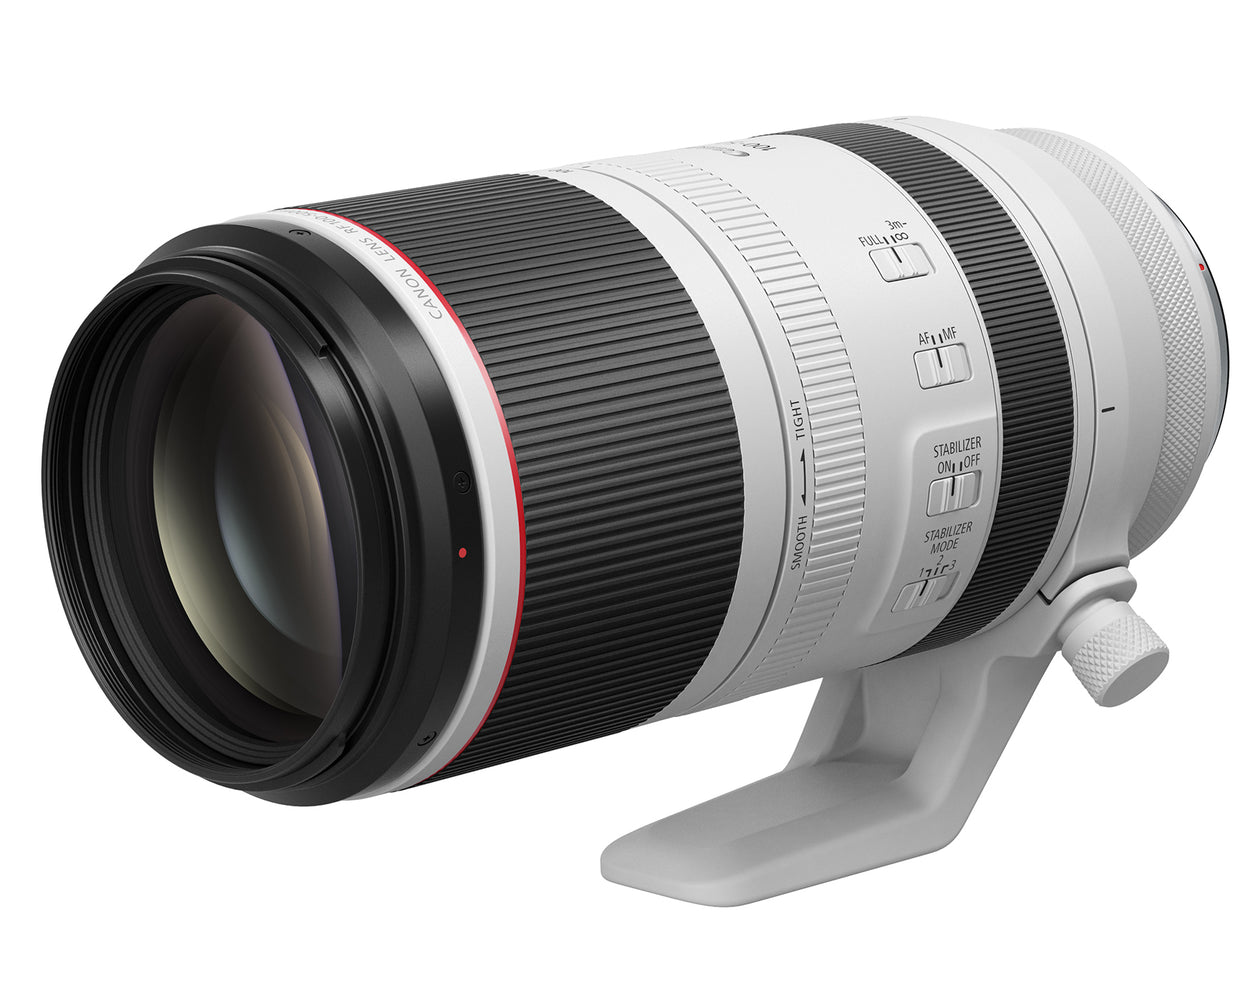 Canon RF 100-500mm f/4.5-7.1 L IS USM Lens